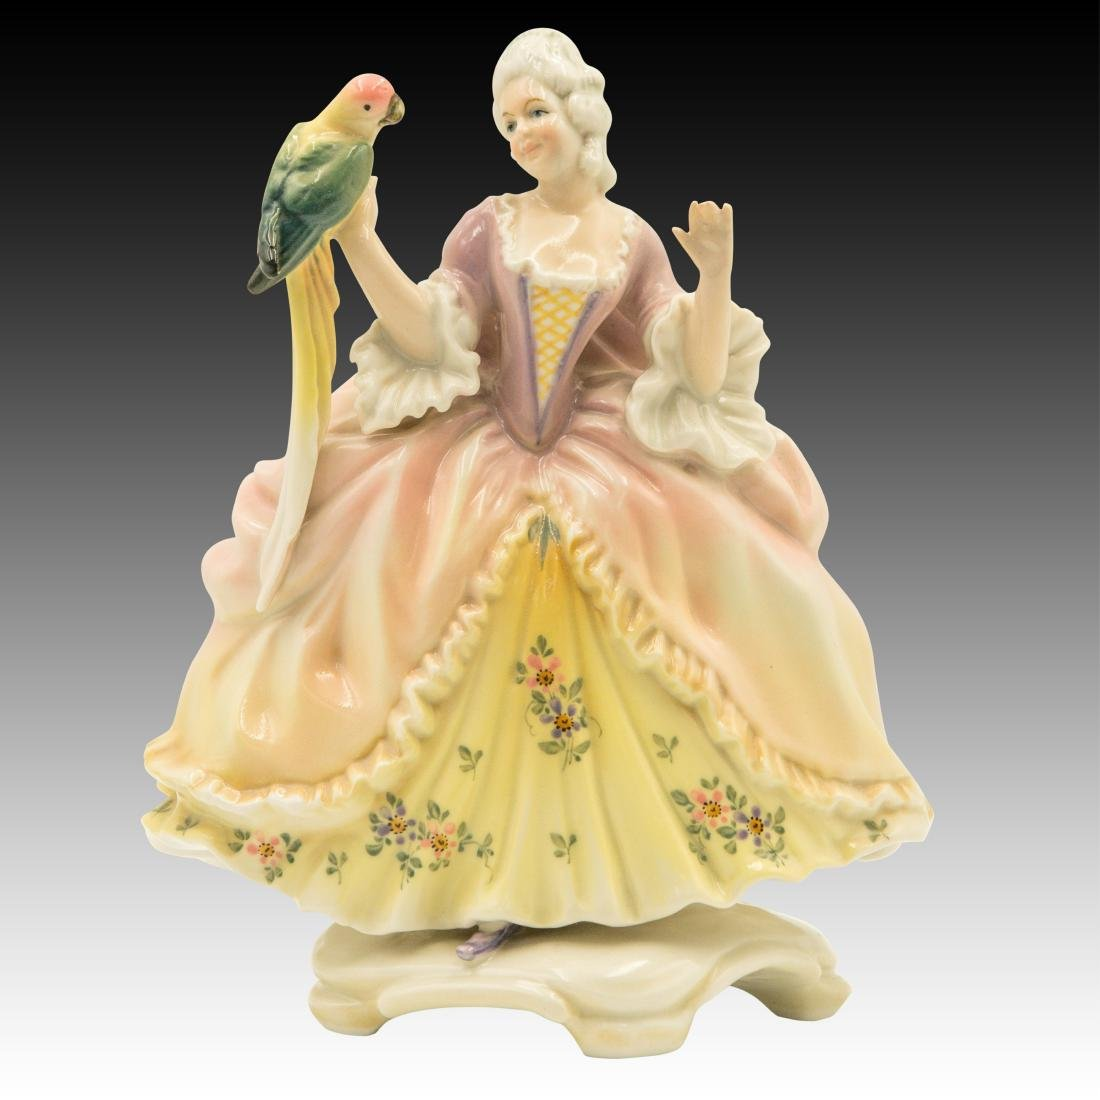 Karl Ens Lady with a Parrot Figurine